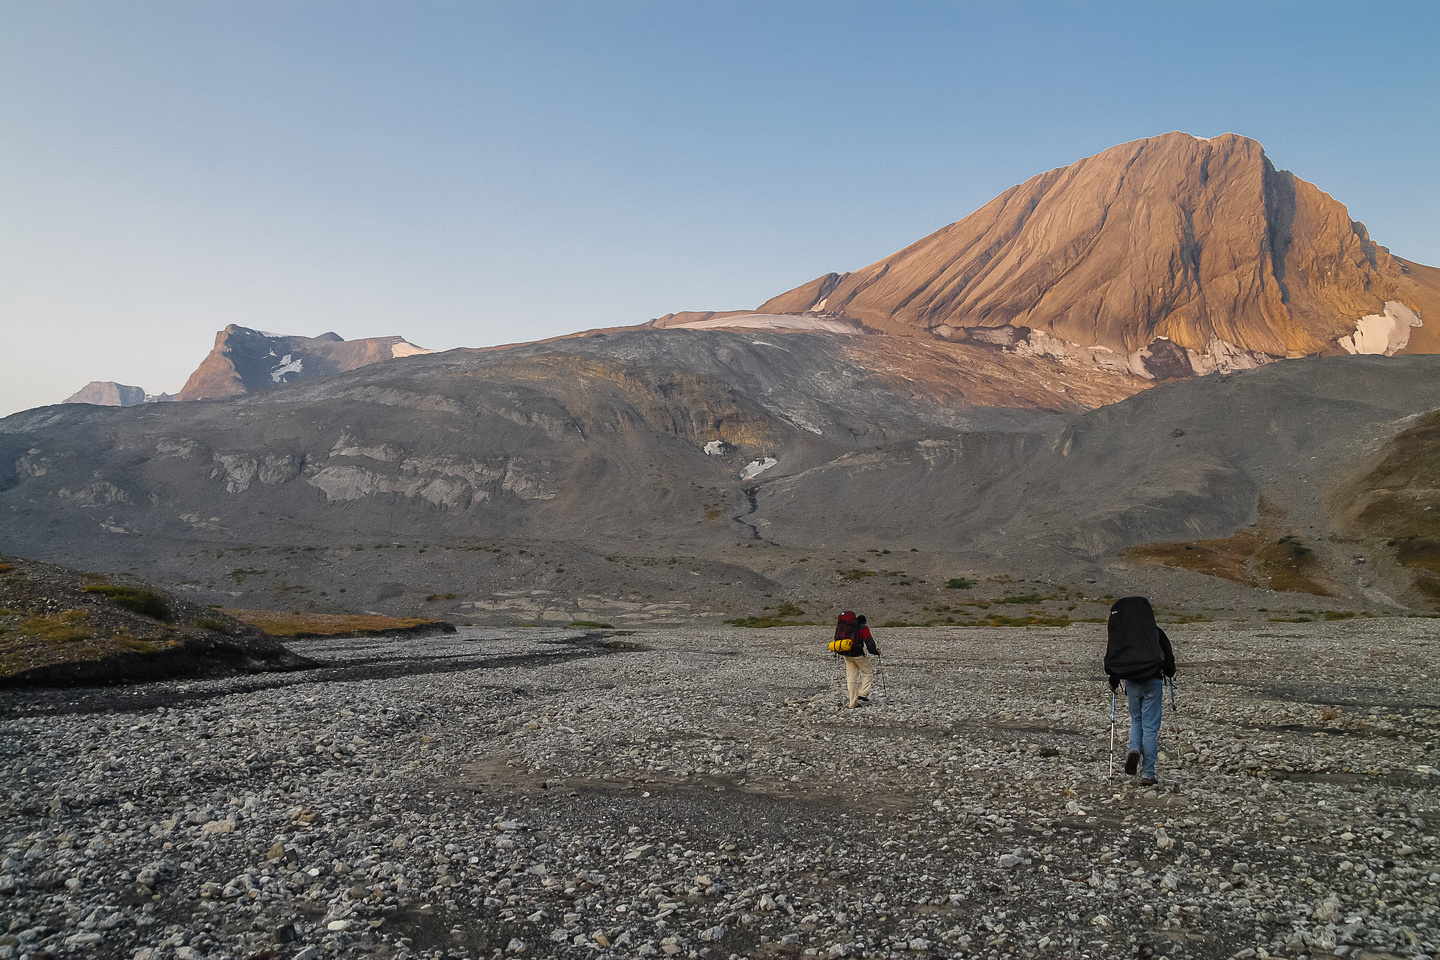 Hiking the glacial flats under Warrior towards the col with Northover which is just out of the photo to the right.